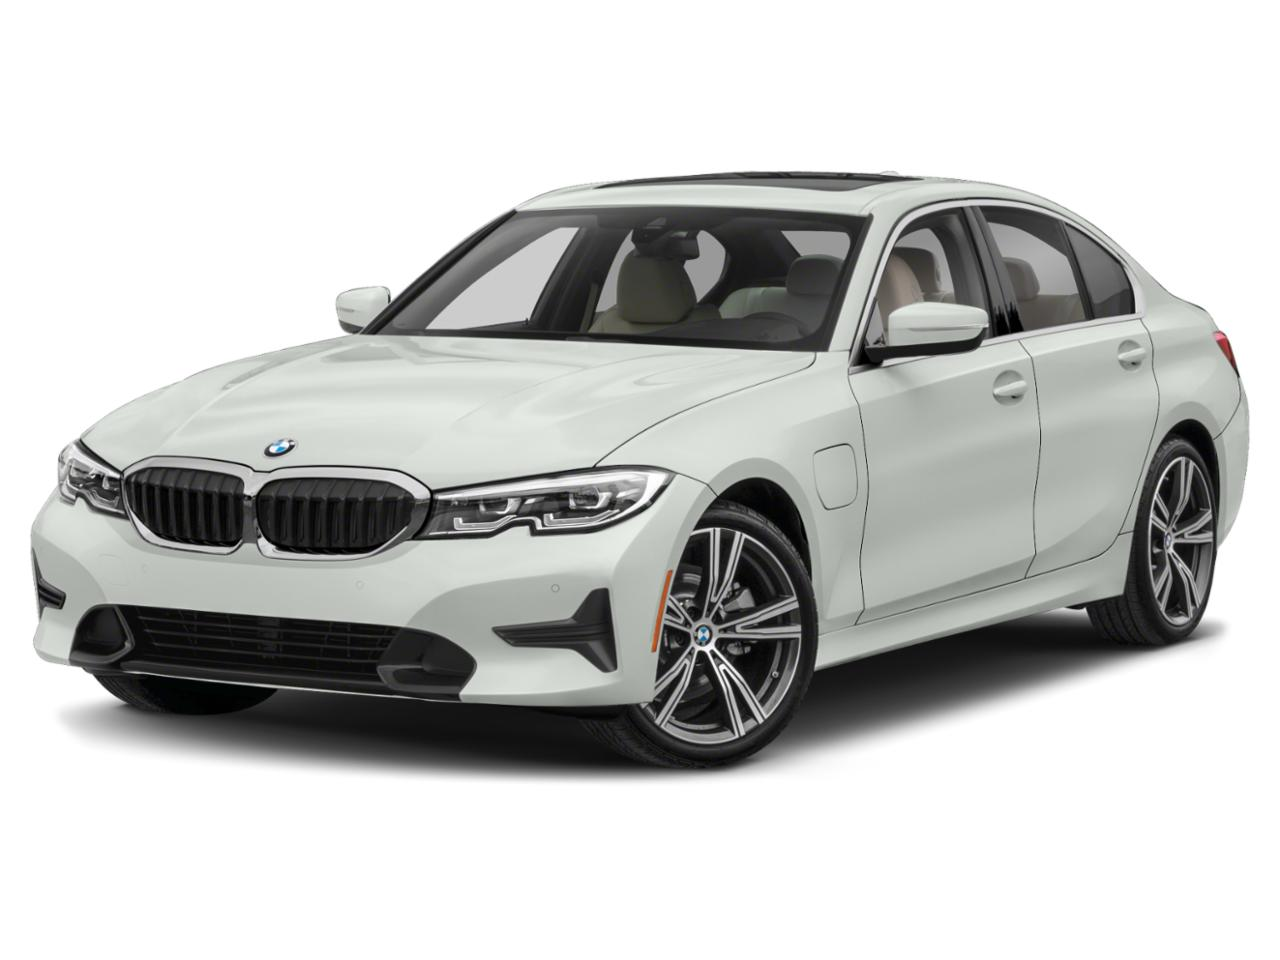 2021 BMW 330e Vehicle Photo in Grapevine, TX 76051